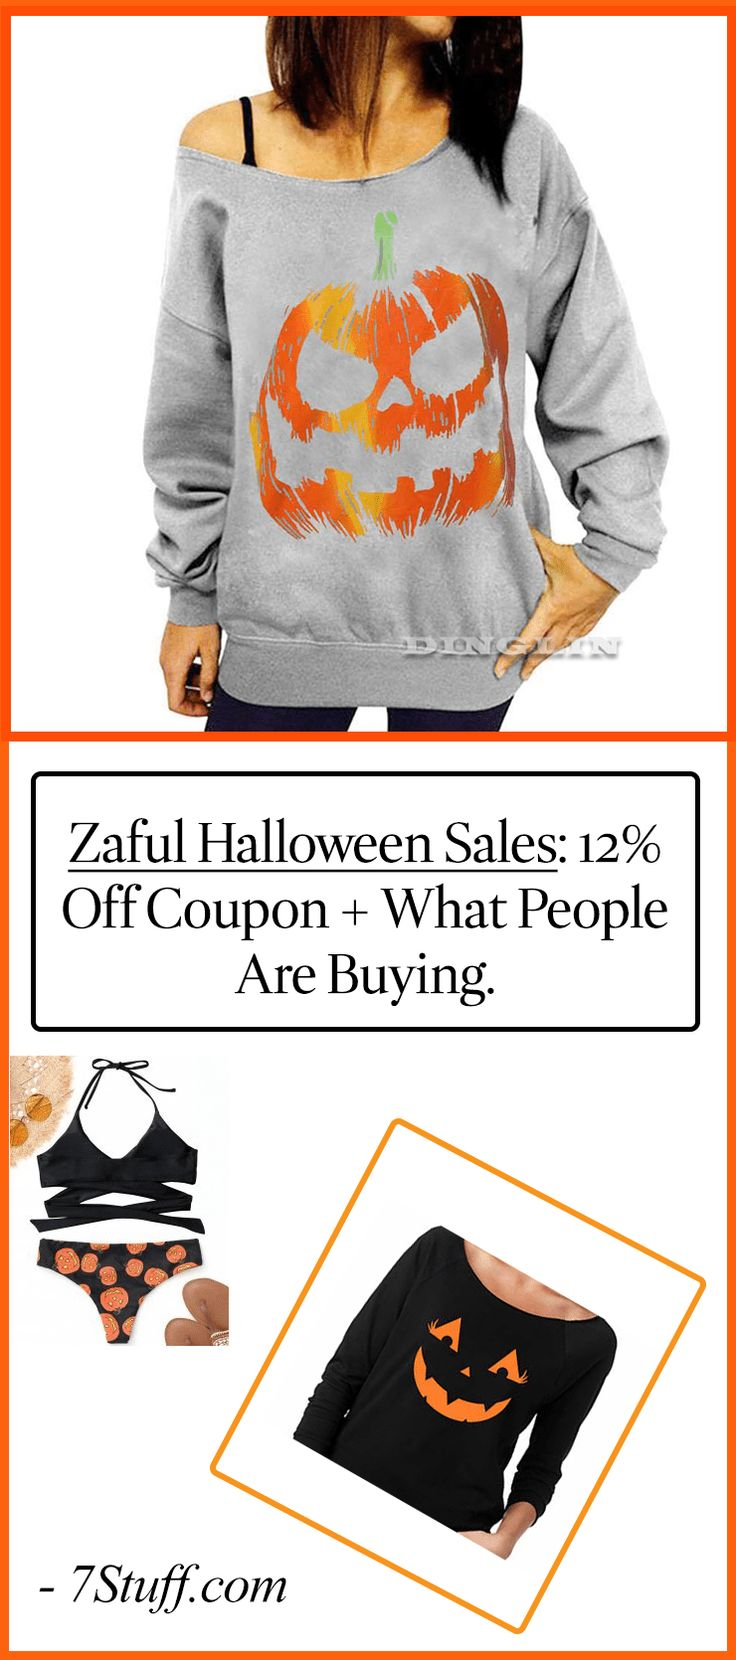 Halloween costumes ideas and where to buy them +zaful shopping coupon code #fashion #style